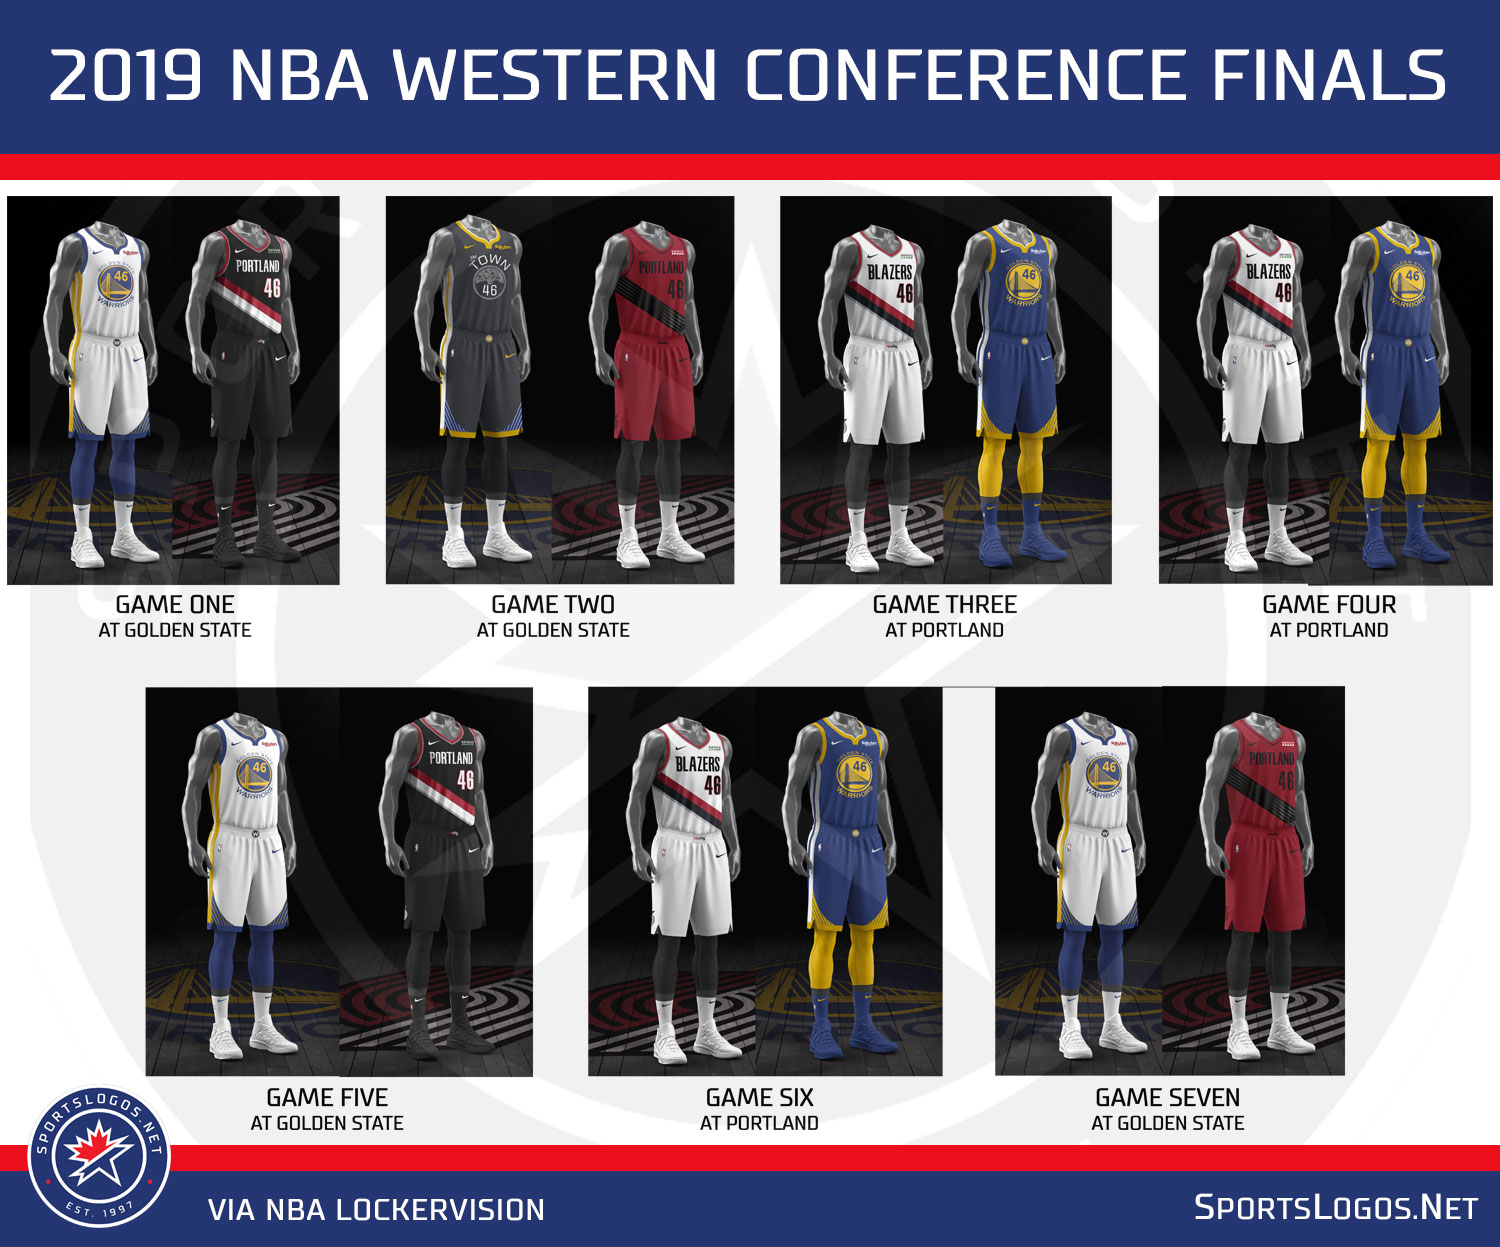 907e9795e For all three games in Portland we ll see the Blazers in white and the  Warriors in blue but in Oakland things get switched up a bit.